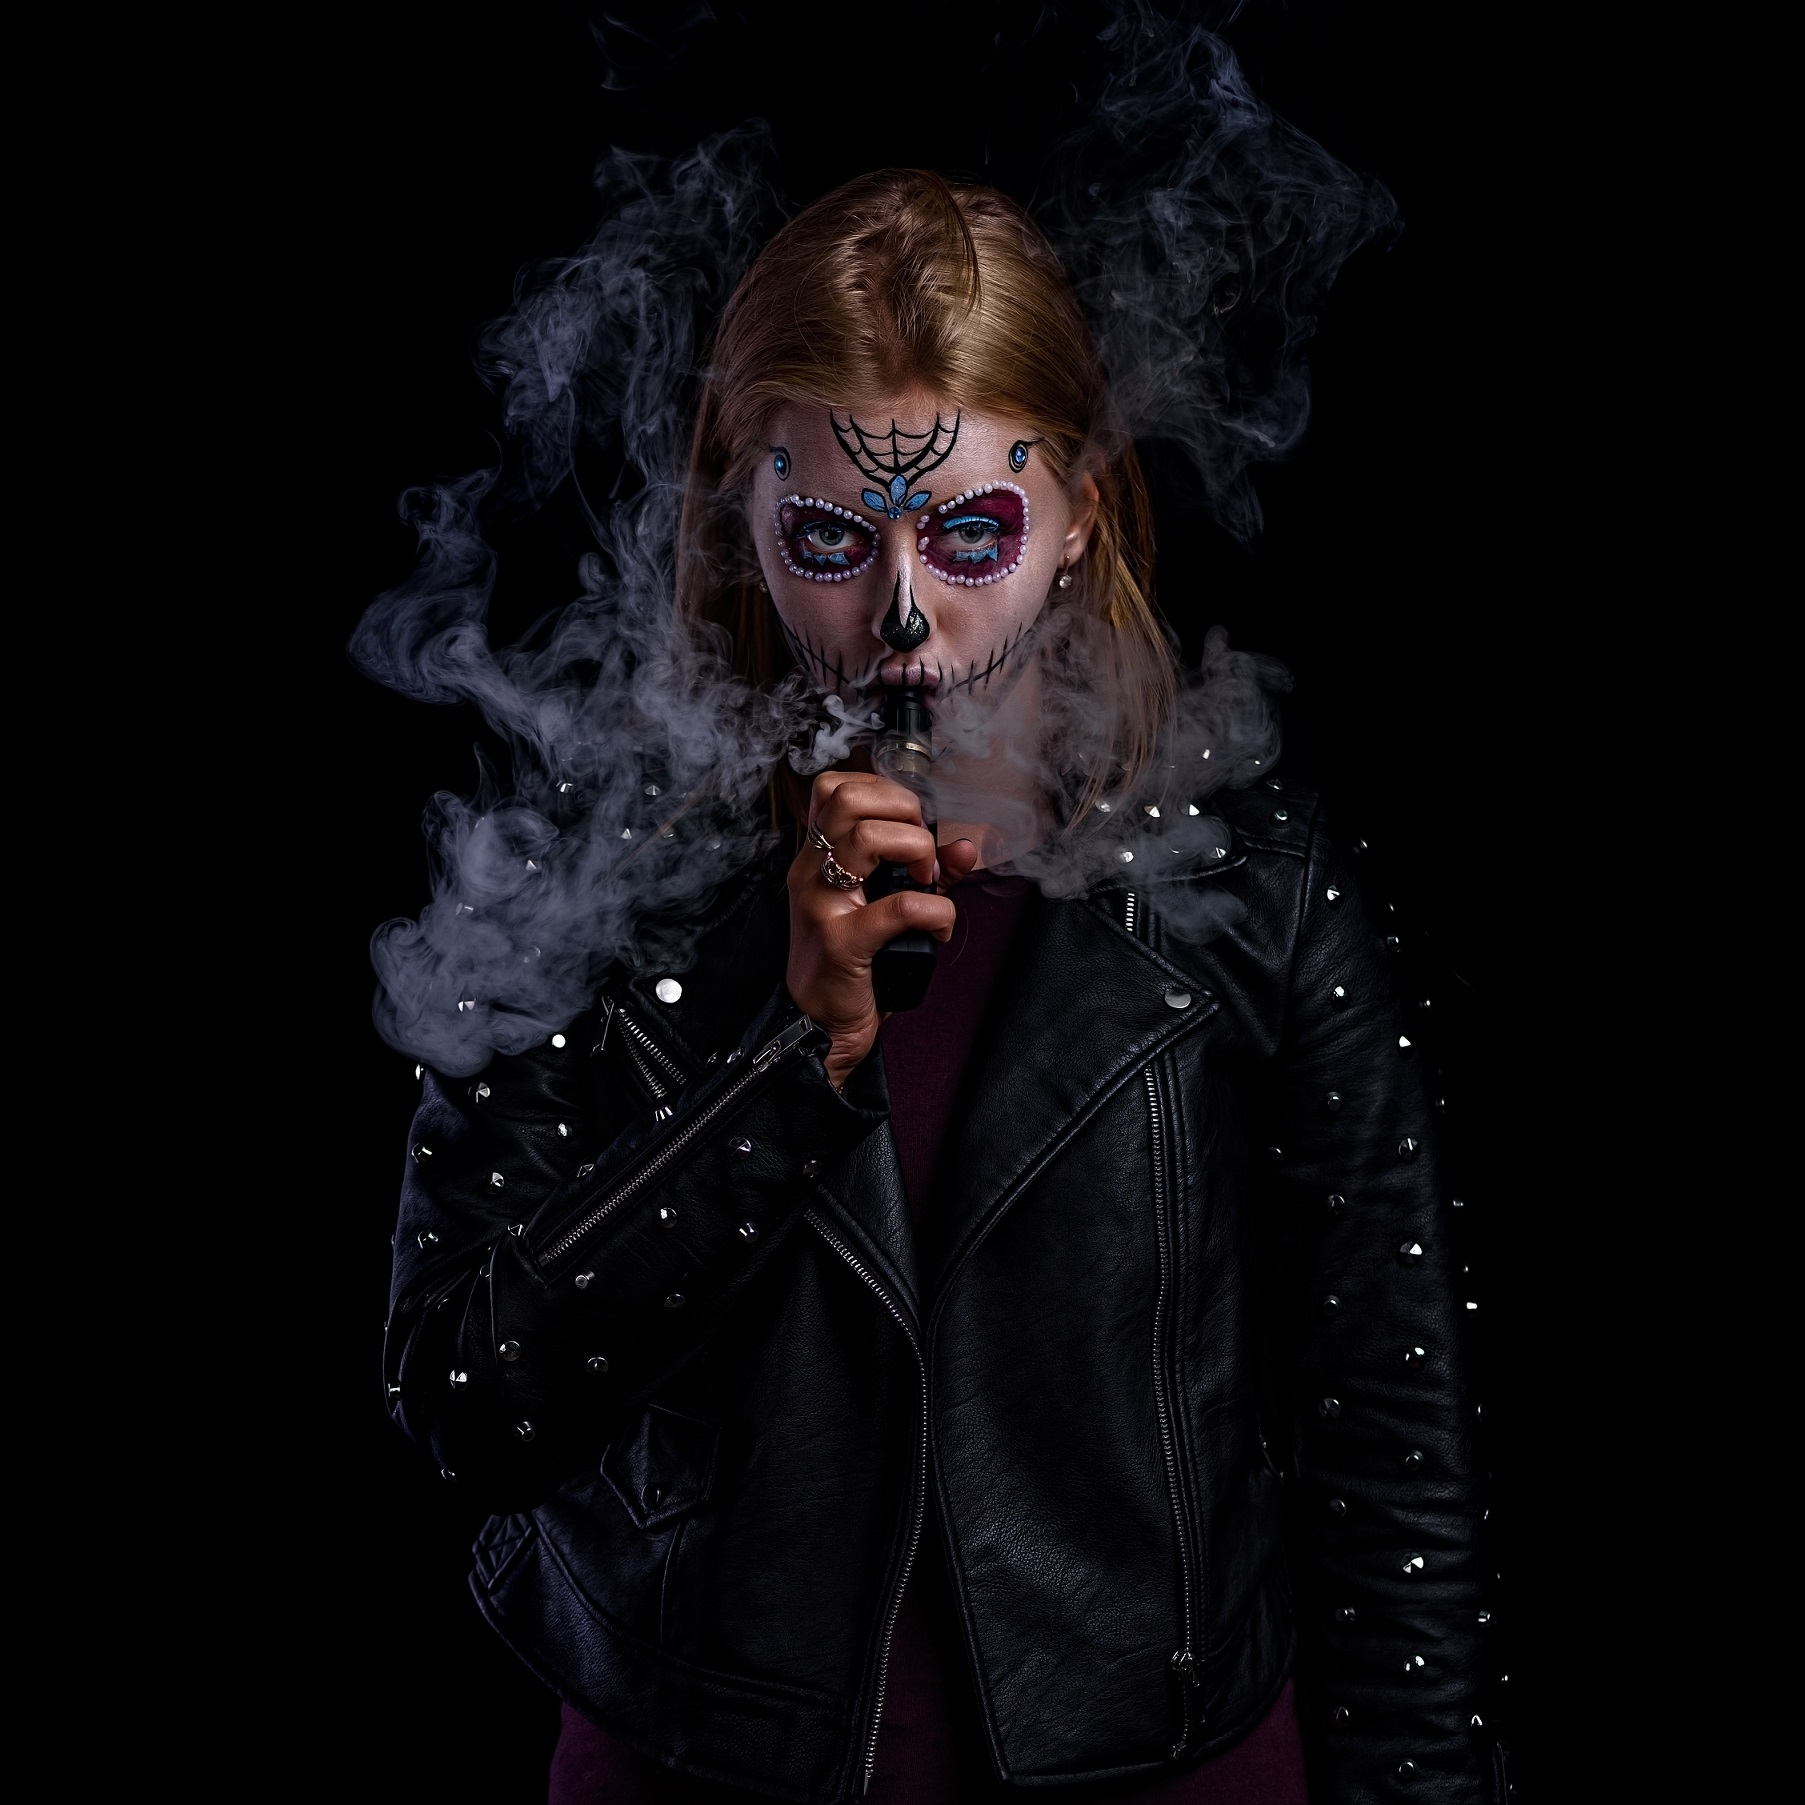 vaping girl with scary make up